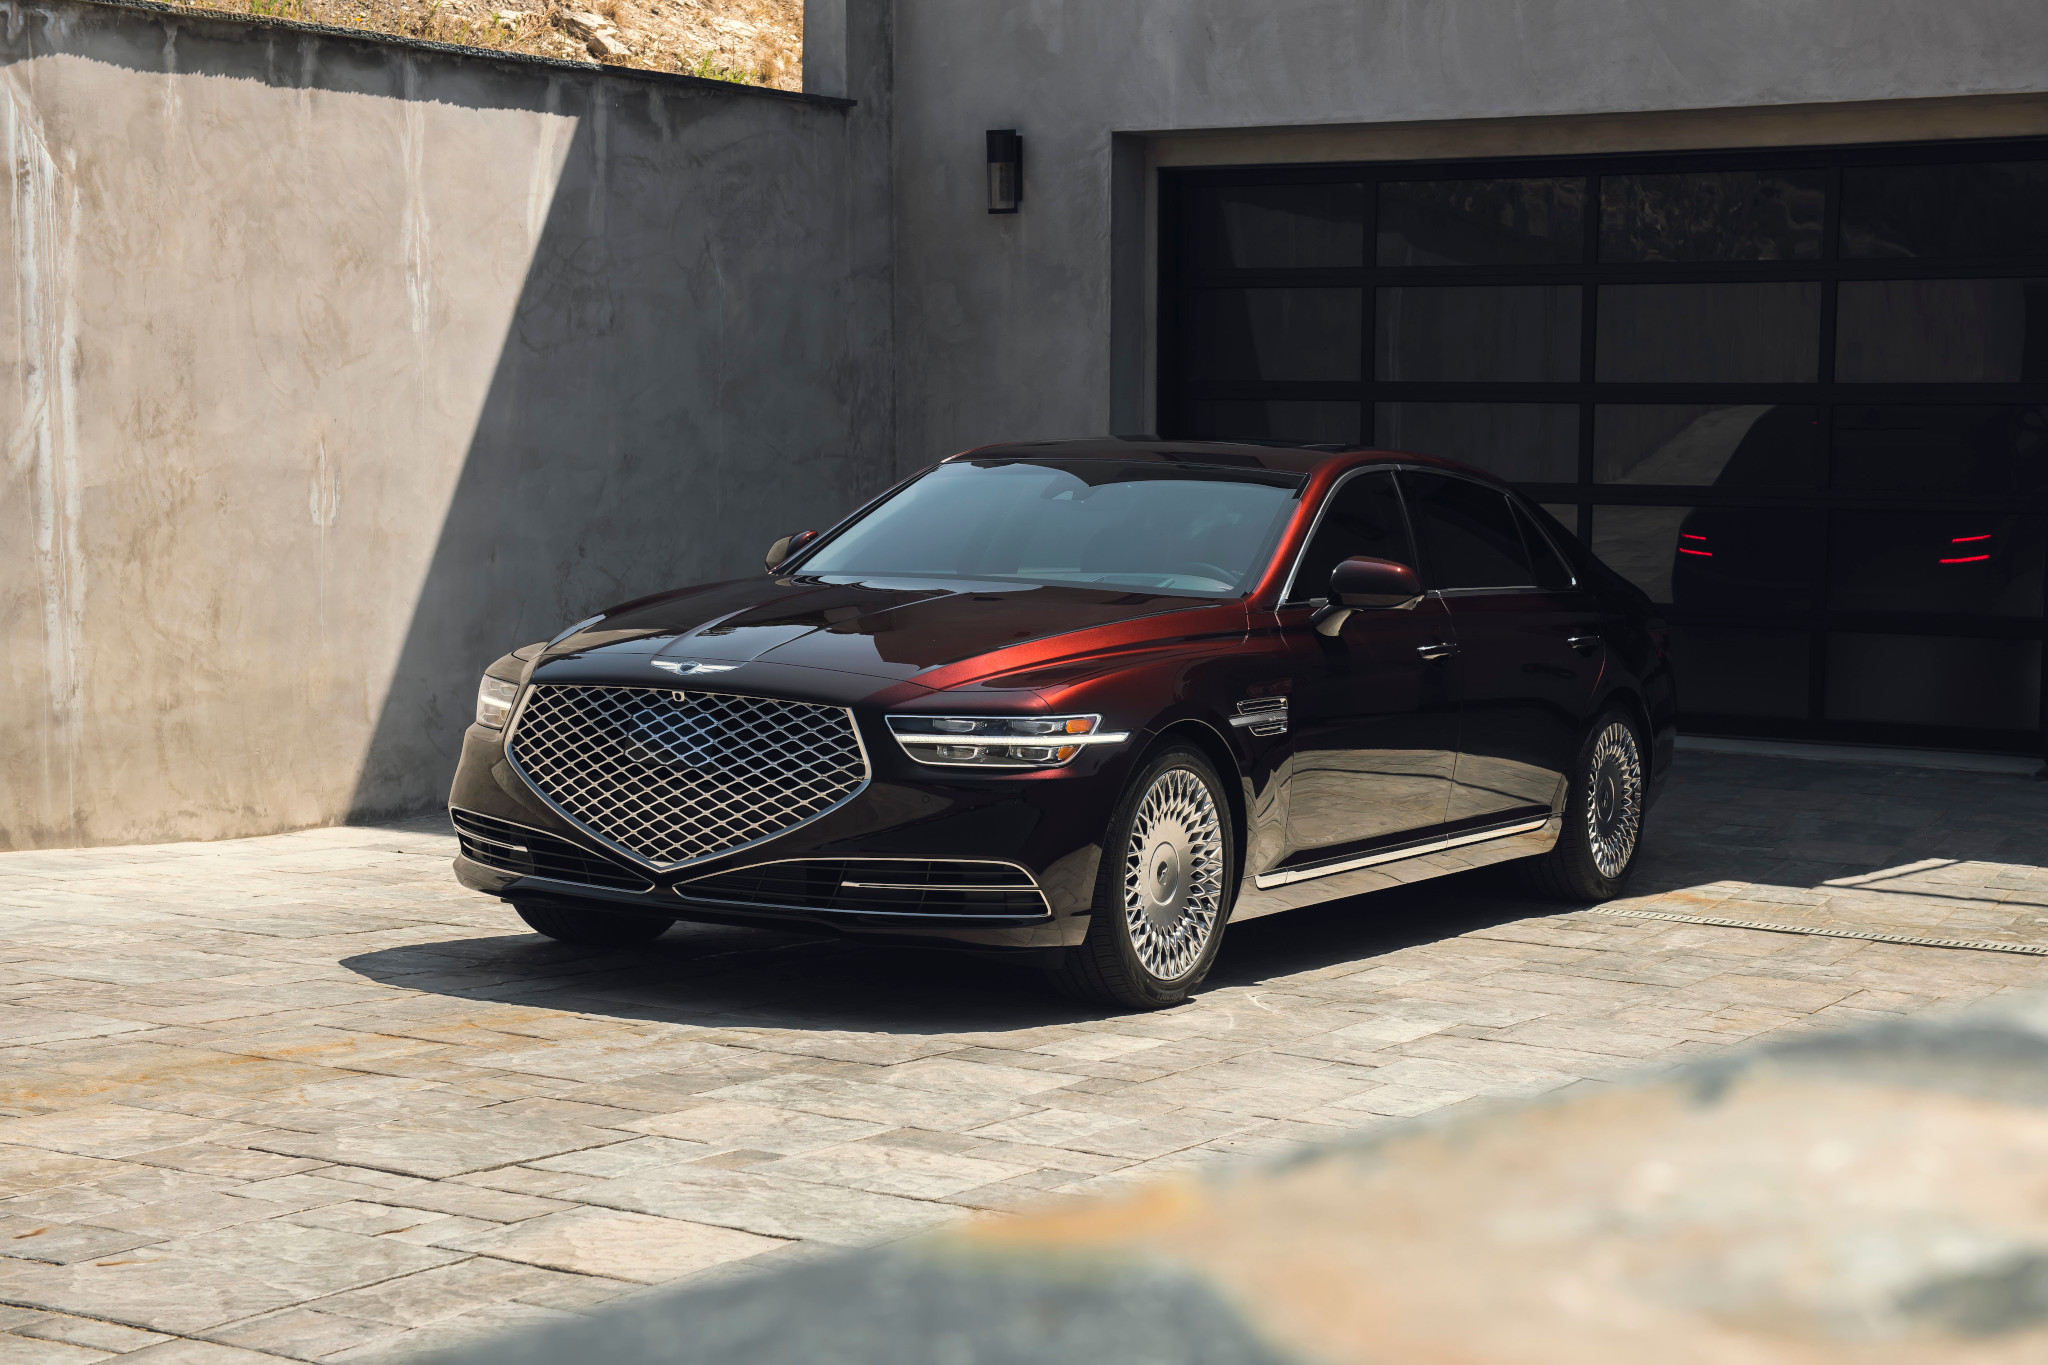 genesis-g90-2020-01-angle--exterior--front--red.jpg